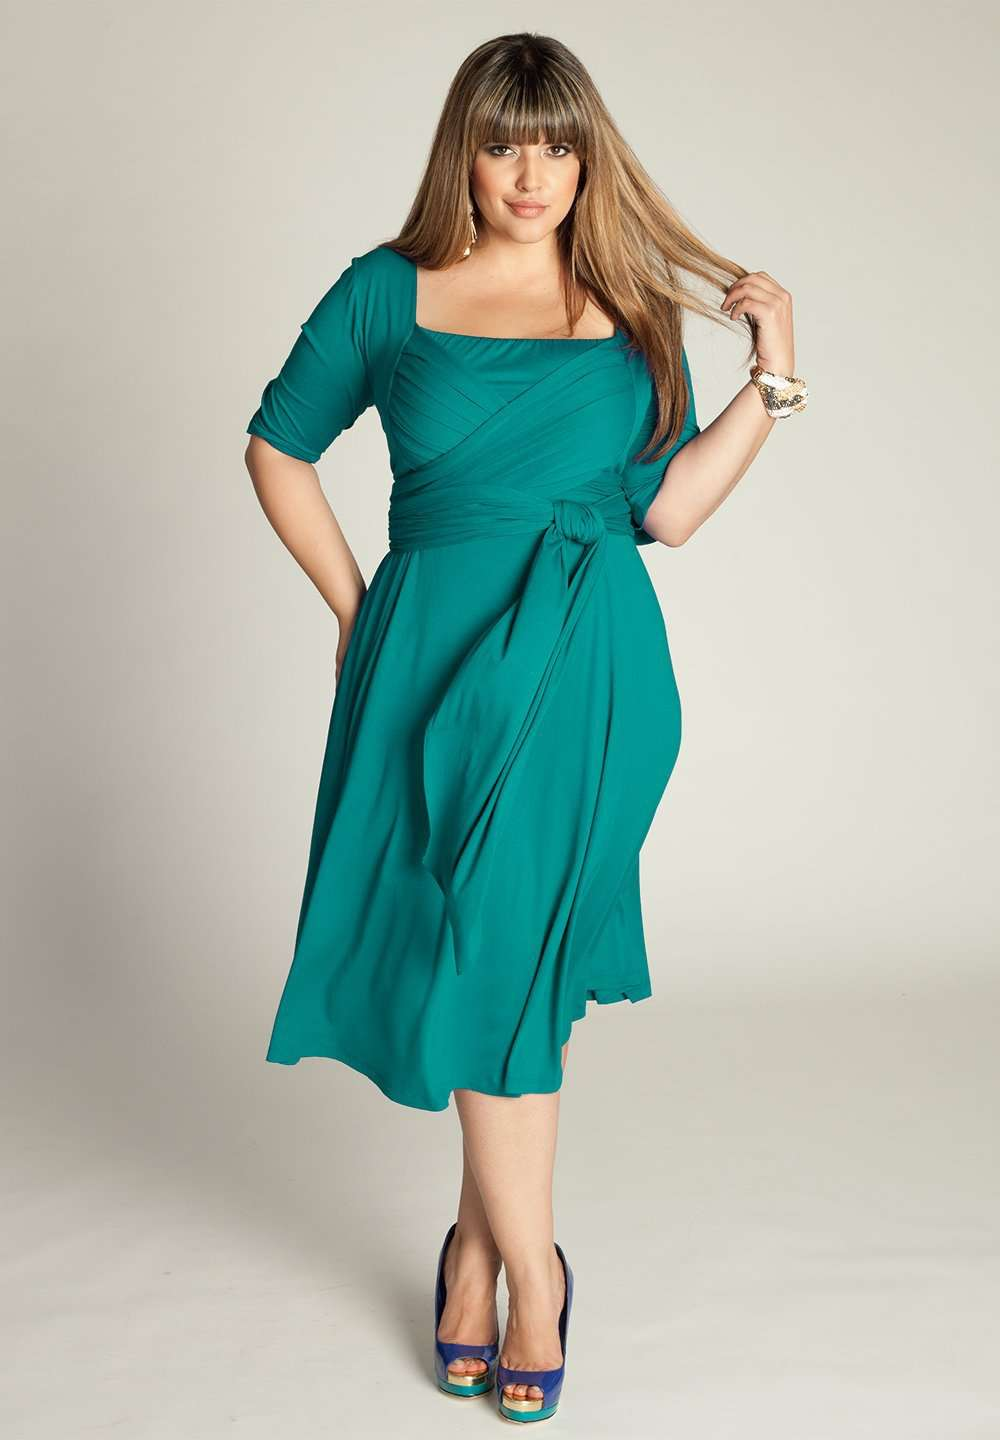 Women\'s Plus Size Dresses | Blake Gown | IGIGI